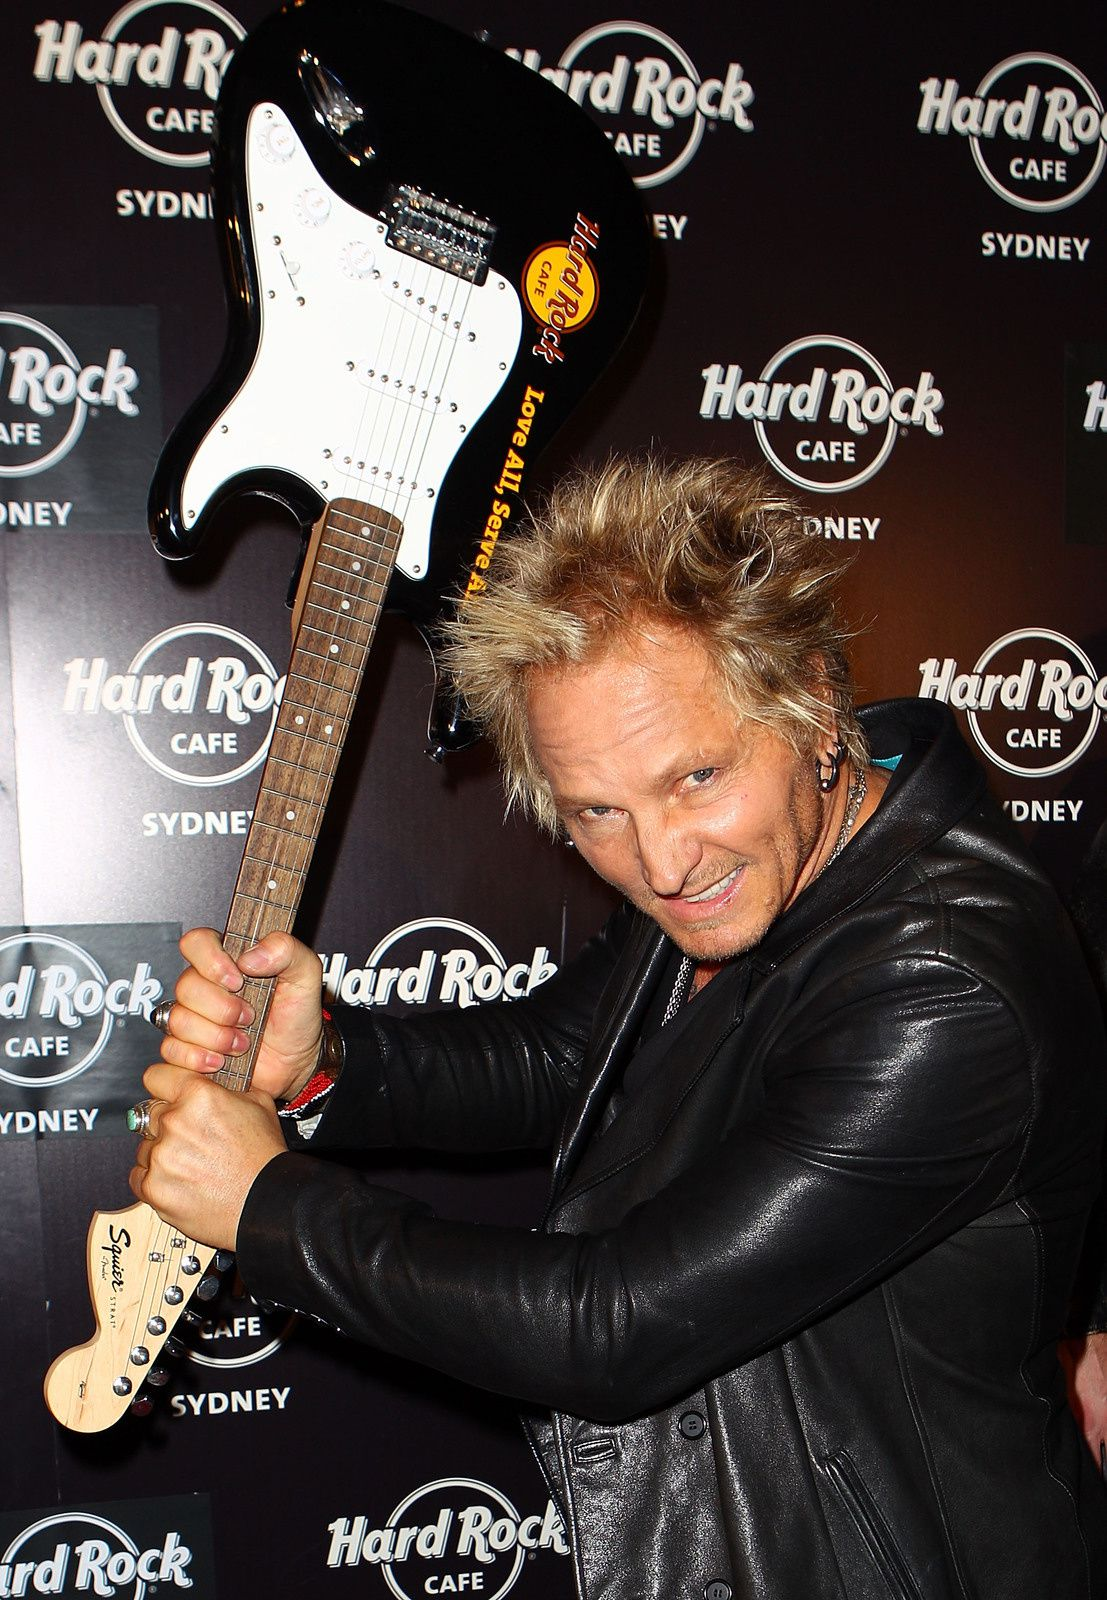 Matt Sorum at the Hard Rock Cafe official opening at Darling Harbour on December 6, 2011 in Sydney, Australia - credit: Ryan Pierse